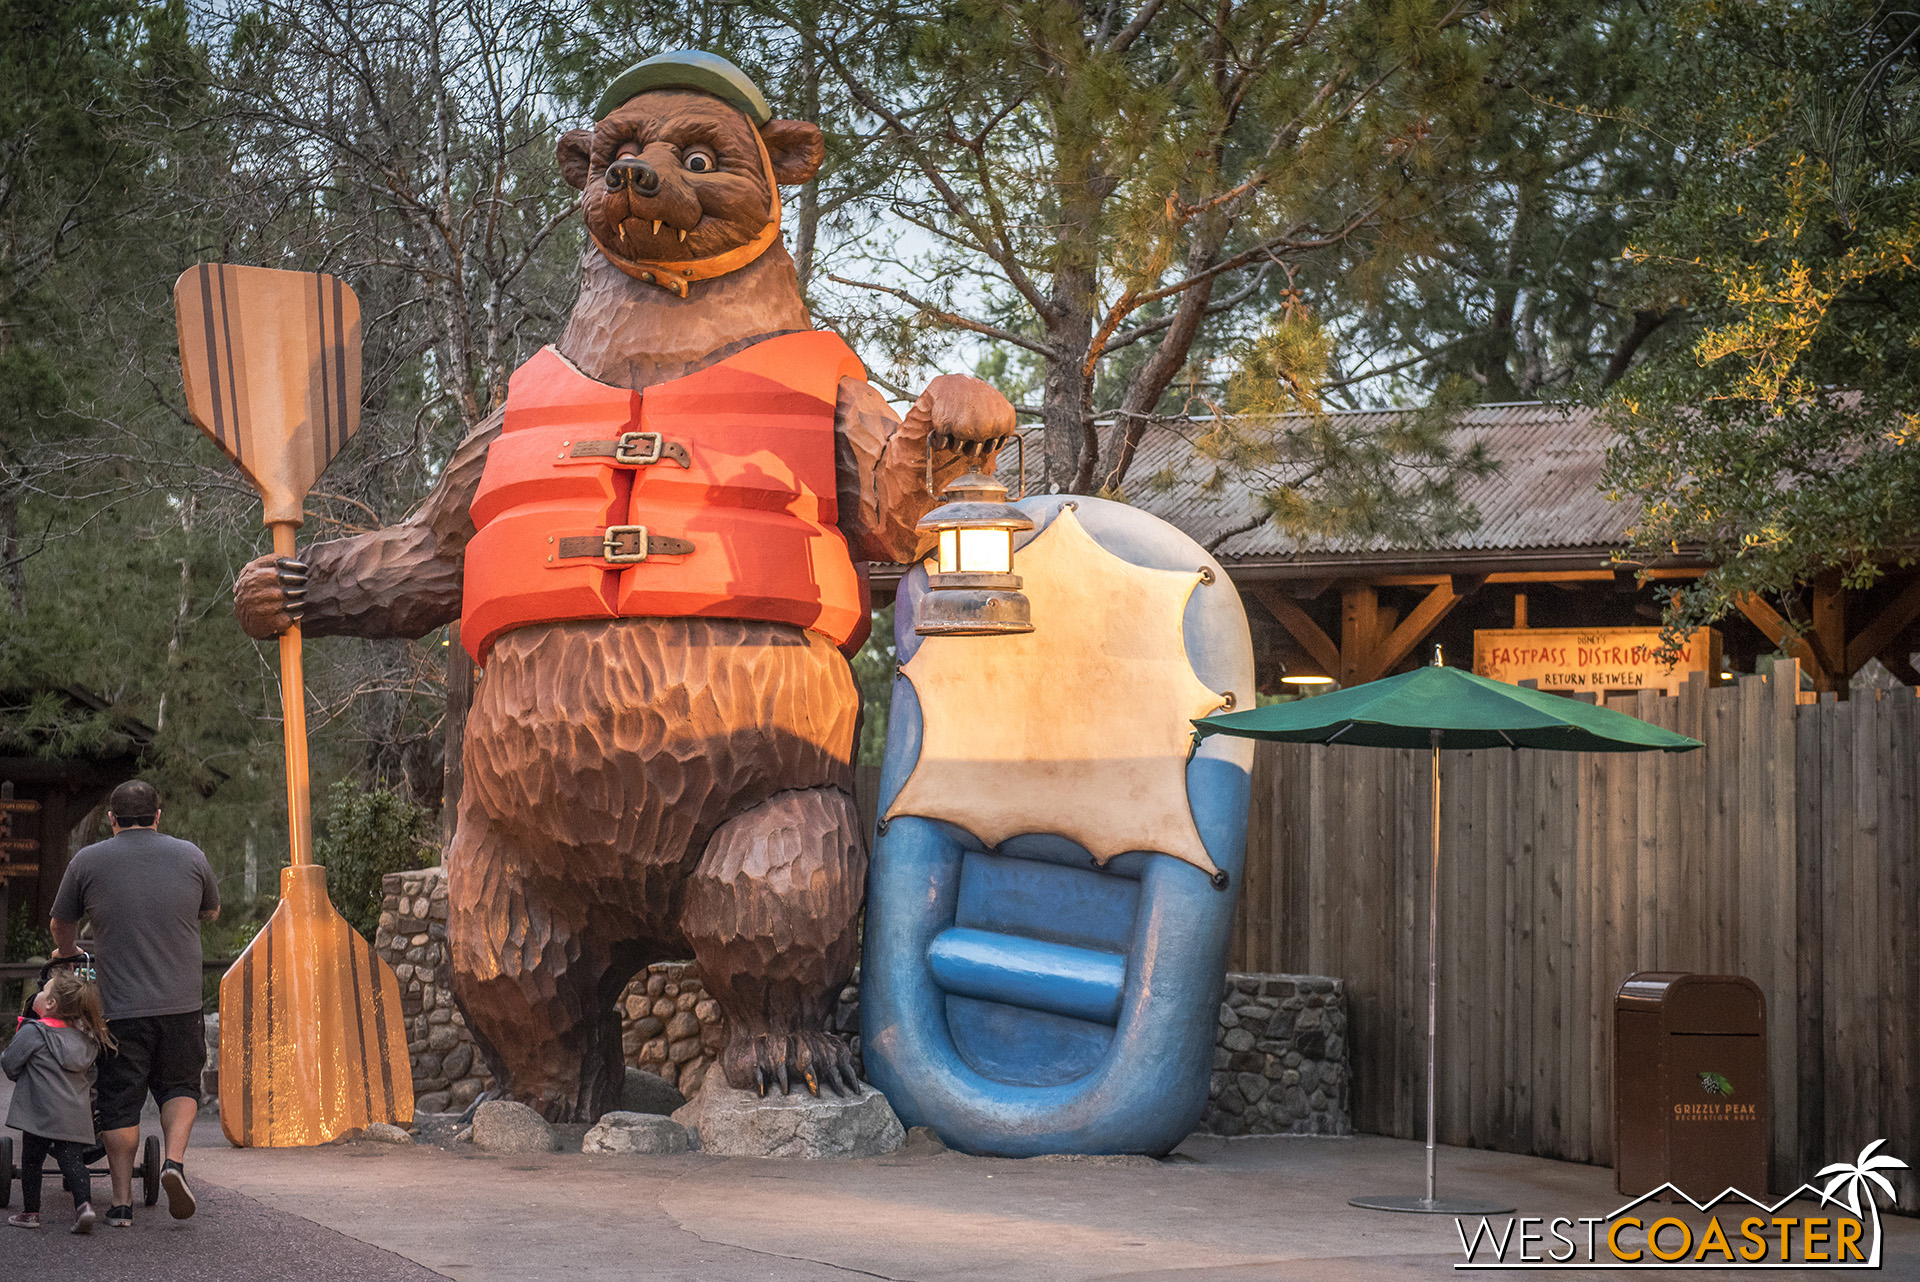 Meanwhile, the bear got a nifty, oranger life vest.